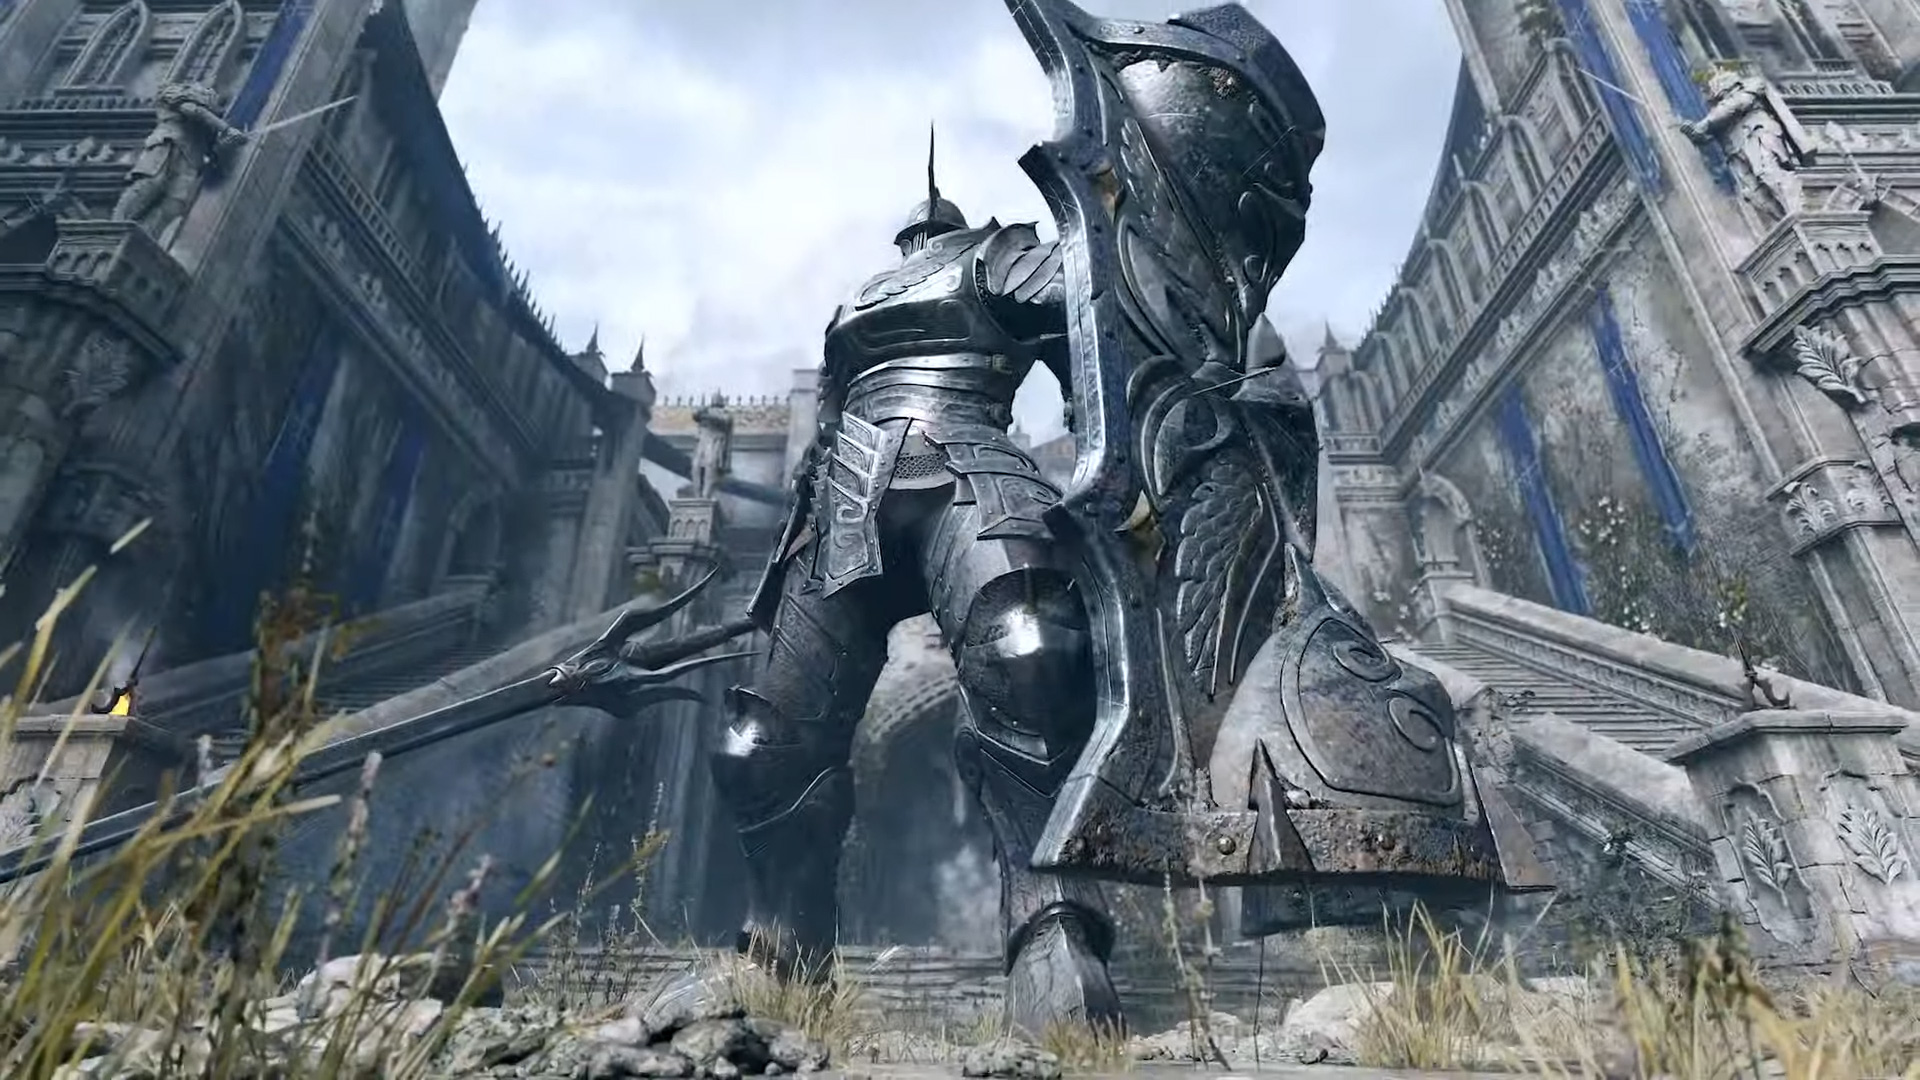 Demon's Souls is back for PlayStation 5 and I have chills screenshot